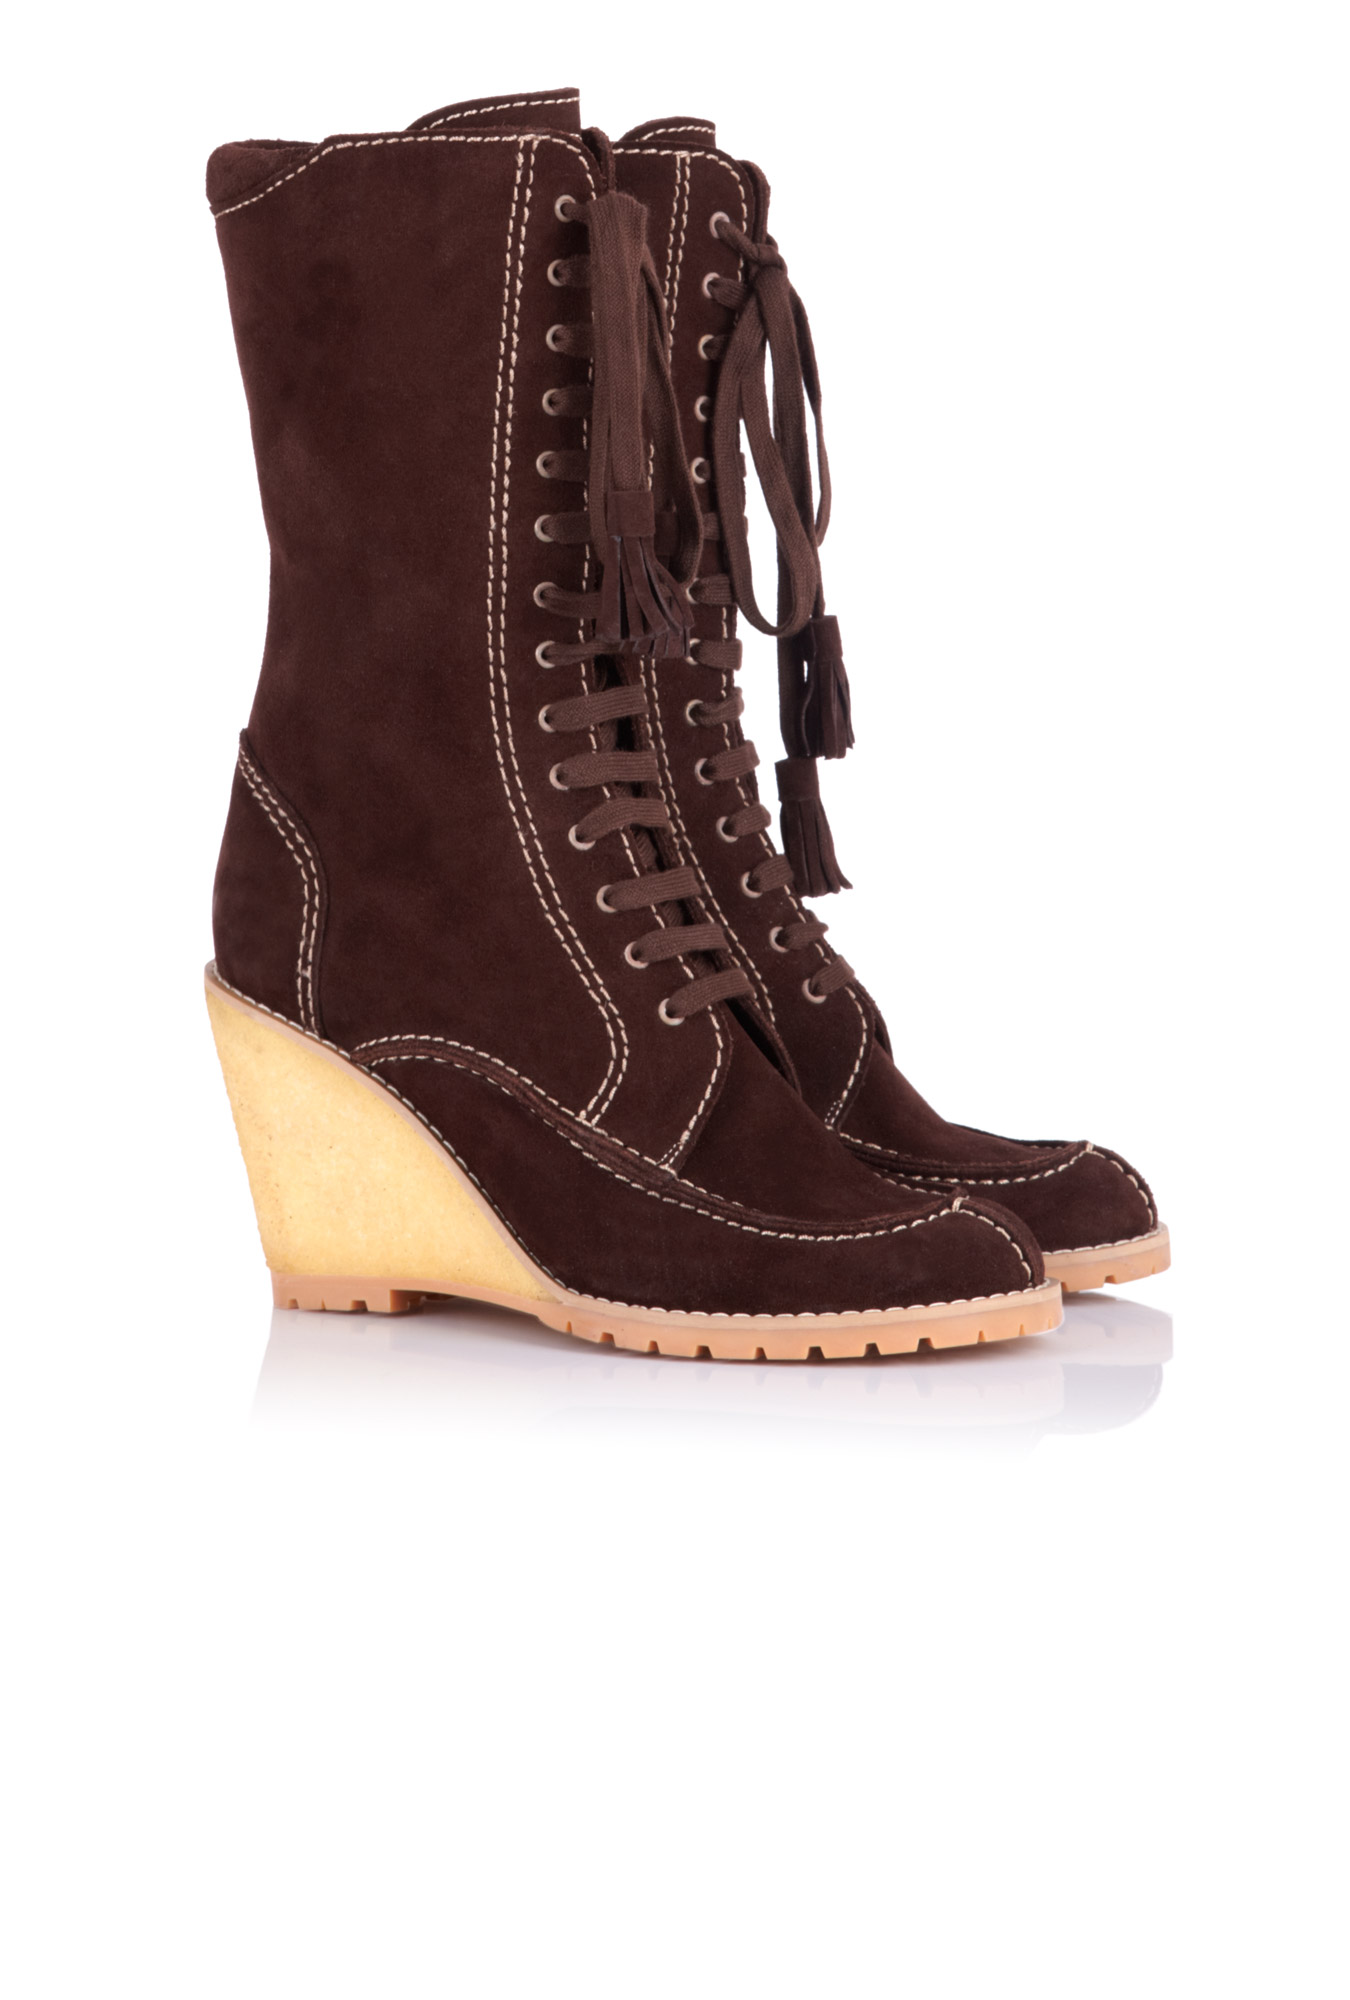 Boots + Booties Shop only the best Boots & Booties for Women at Forever Find everything from on-trend ankle boots to over-the-knee boots in sleek and embellished designs.